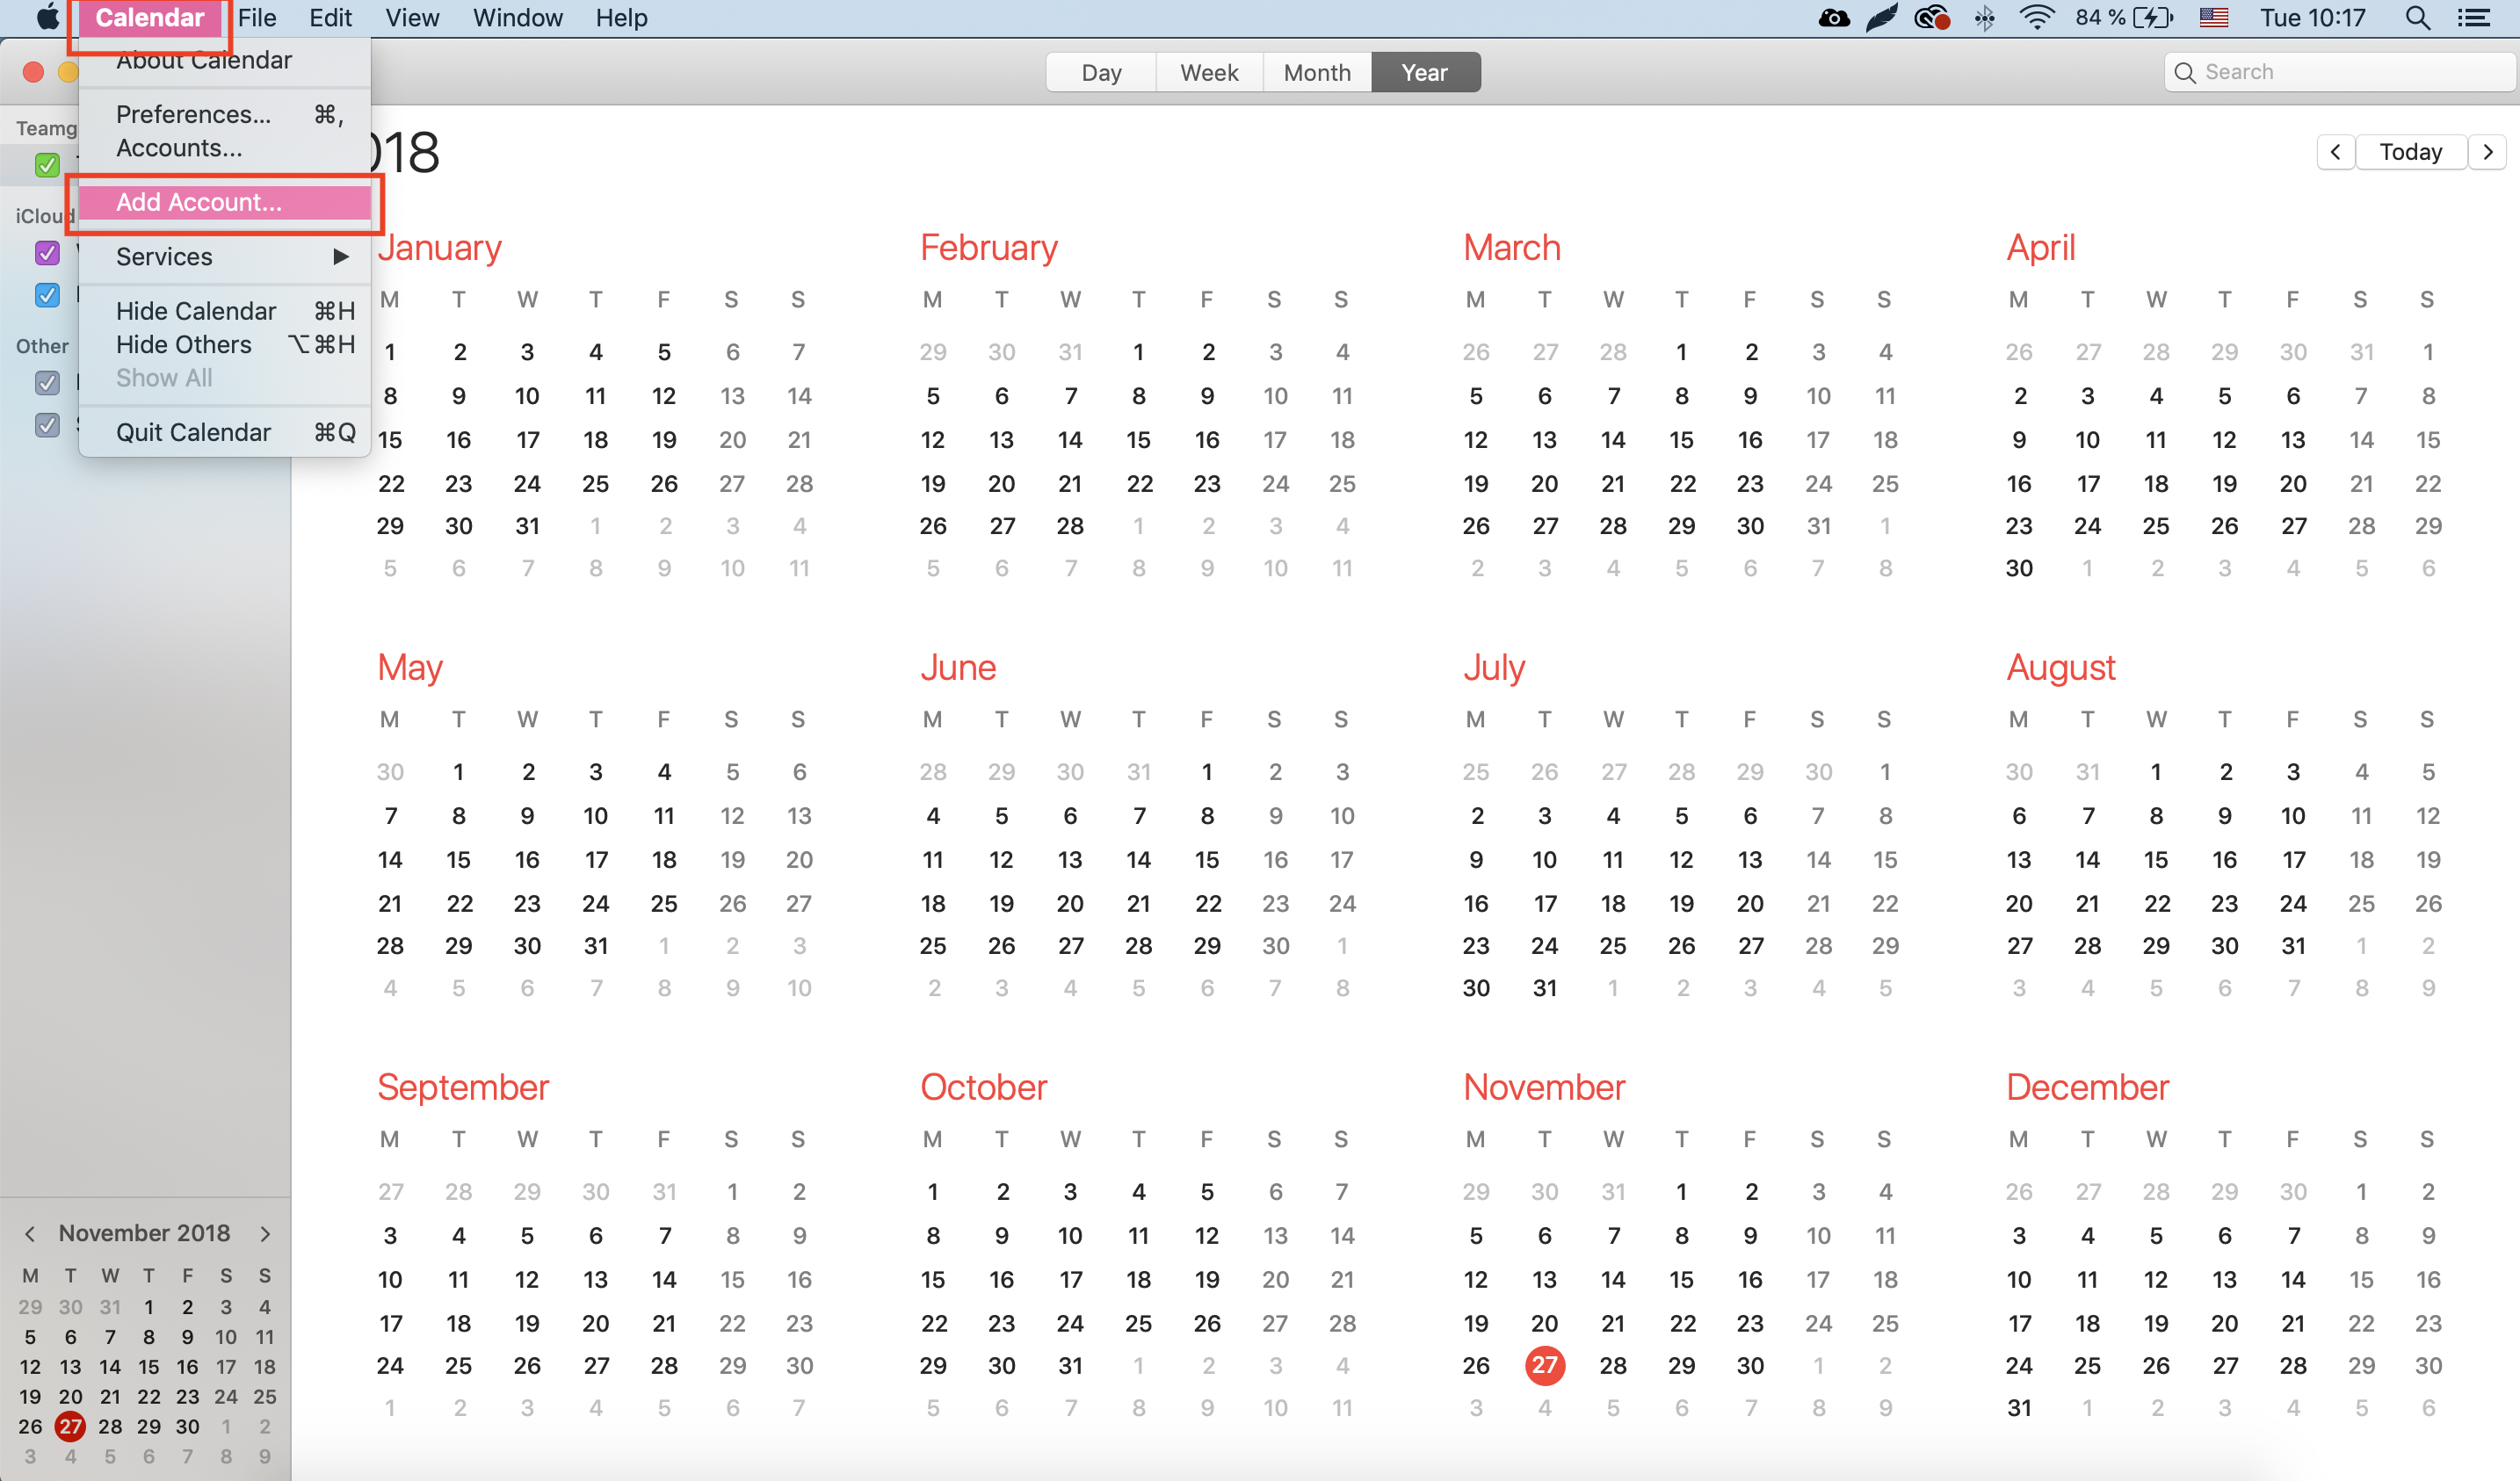 Mac-calendar-add-account-configuration-Teamgate-calendar-sync.png